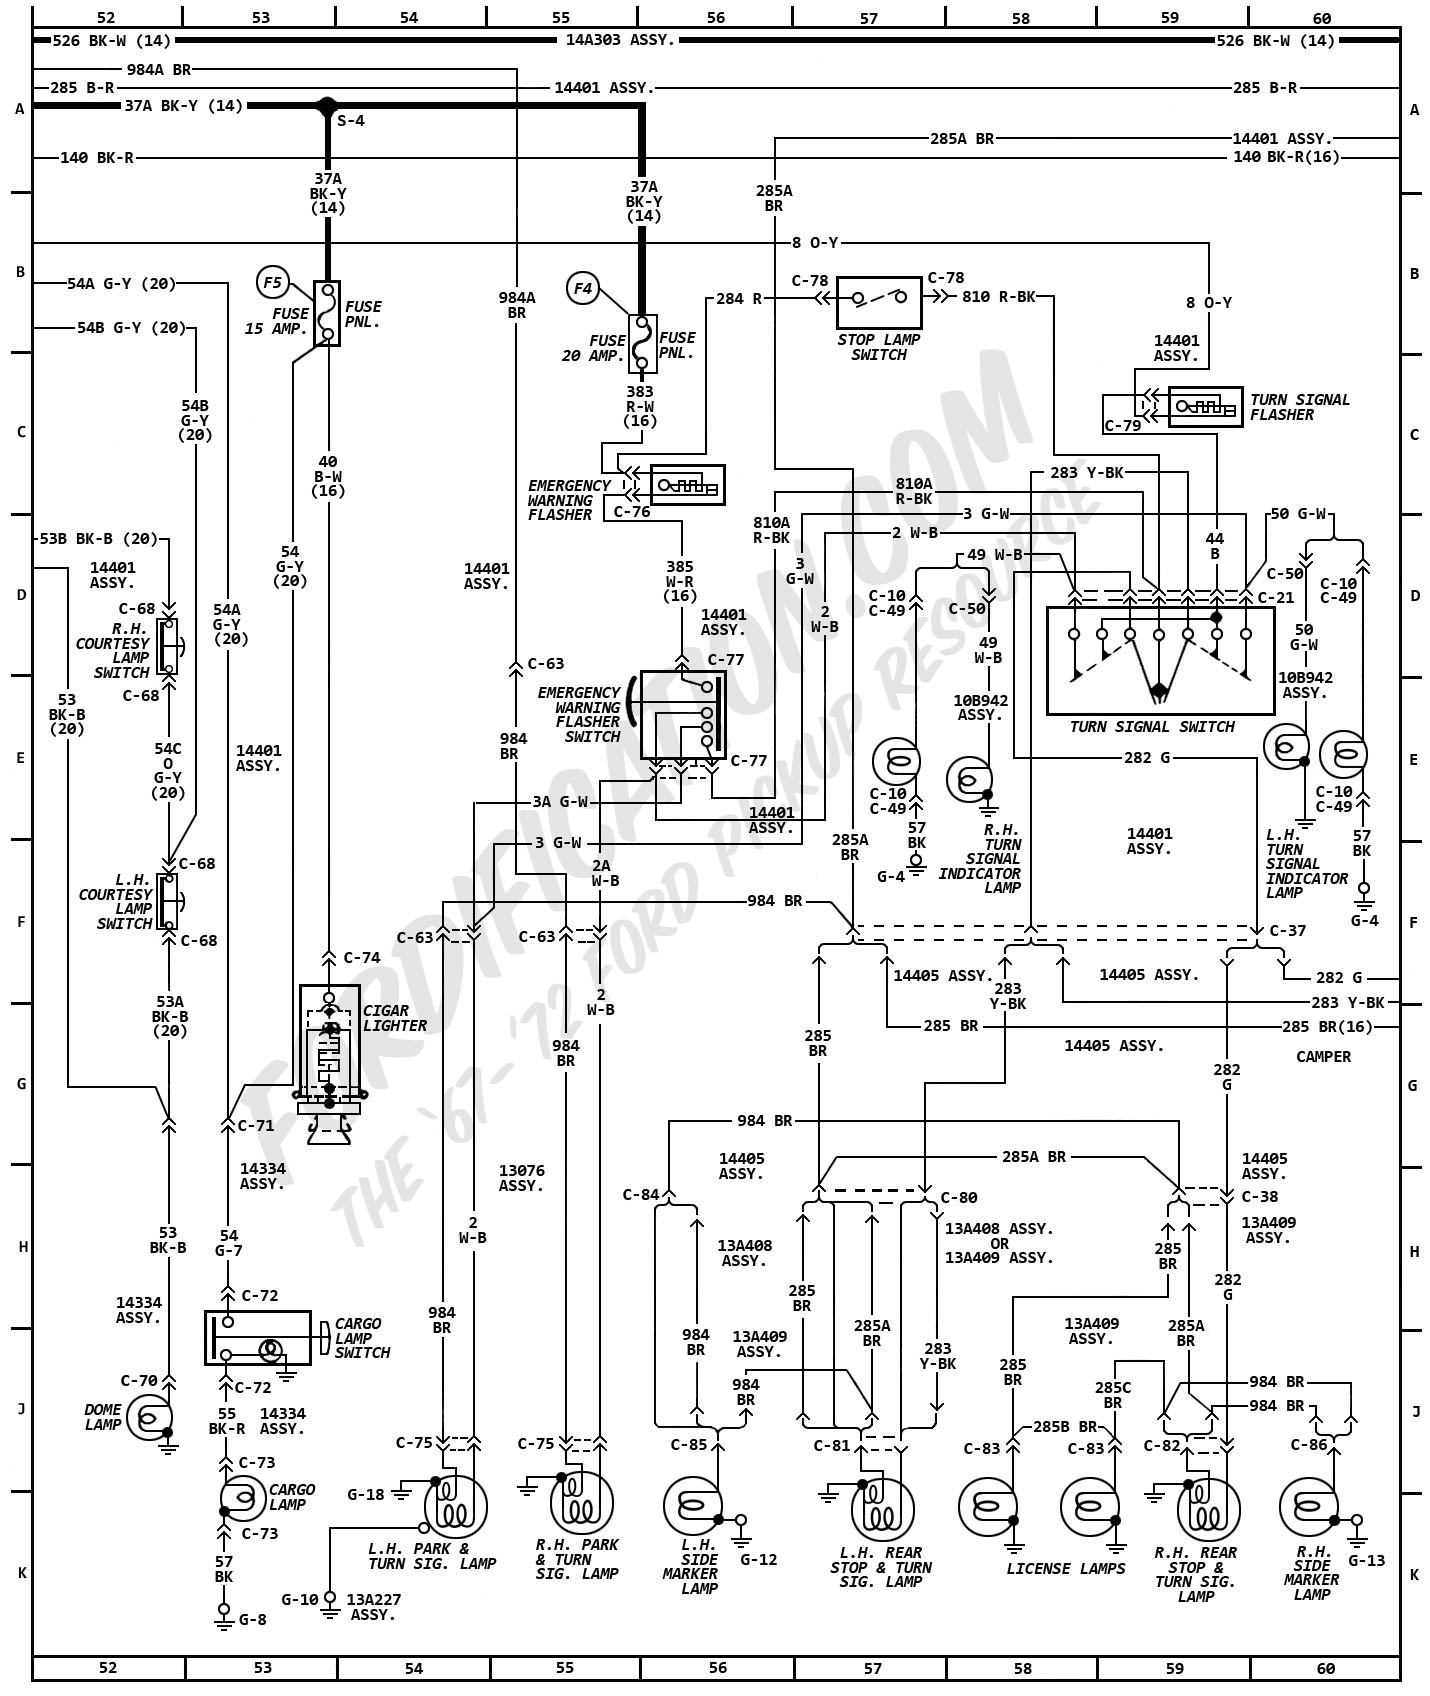 1968 Ford F 250 Starter Wiring Diagram Reveolution Of Convertible 1972 F250 Ignition Simple Rh David Huggett Co Uk 1969 2001 Super Duty